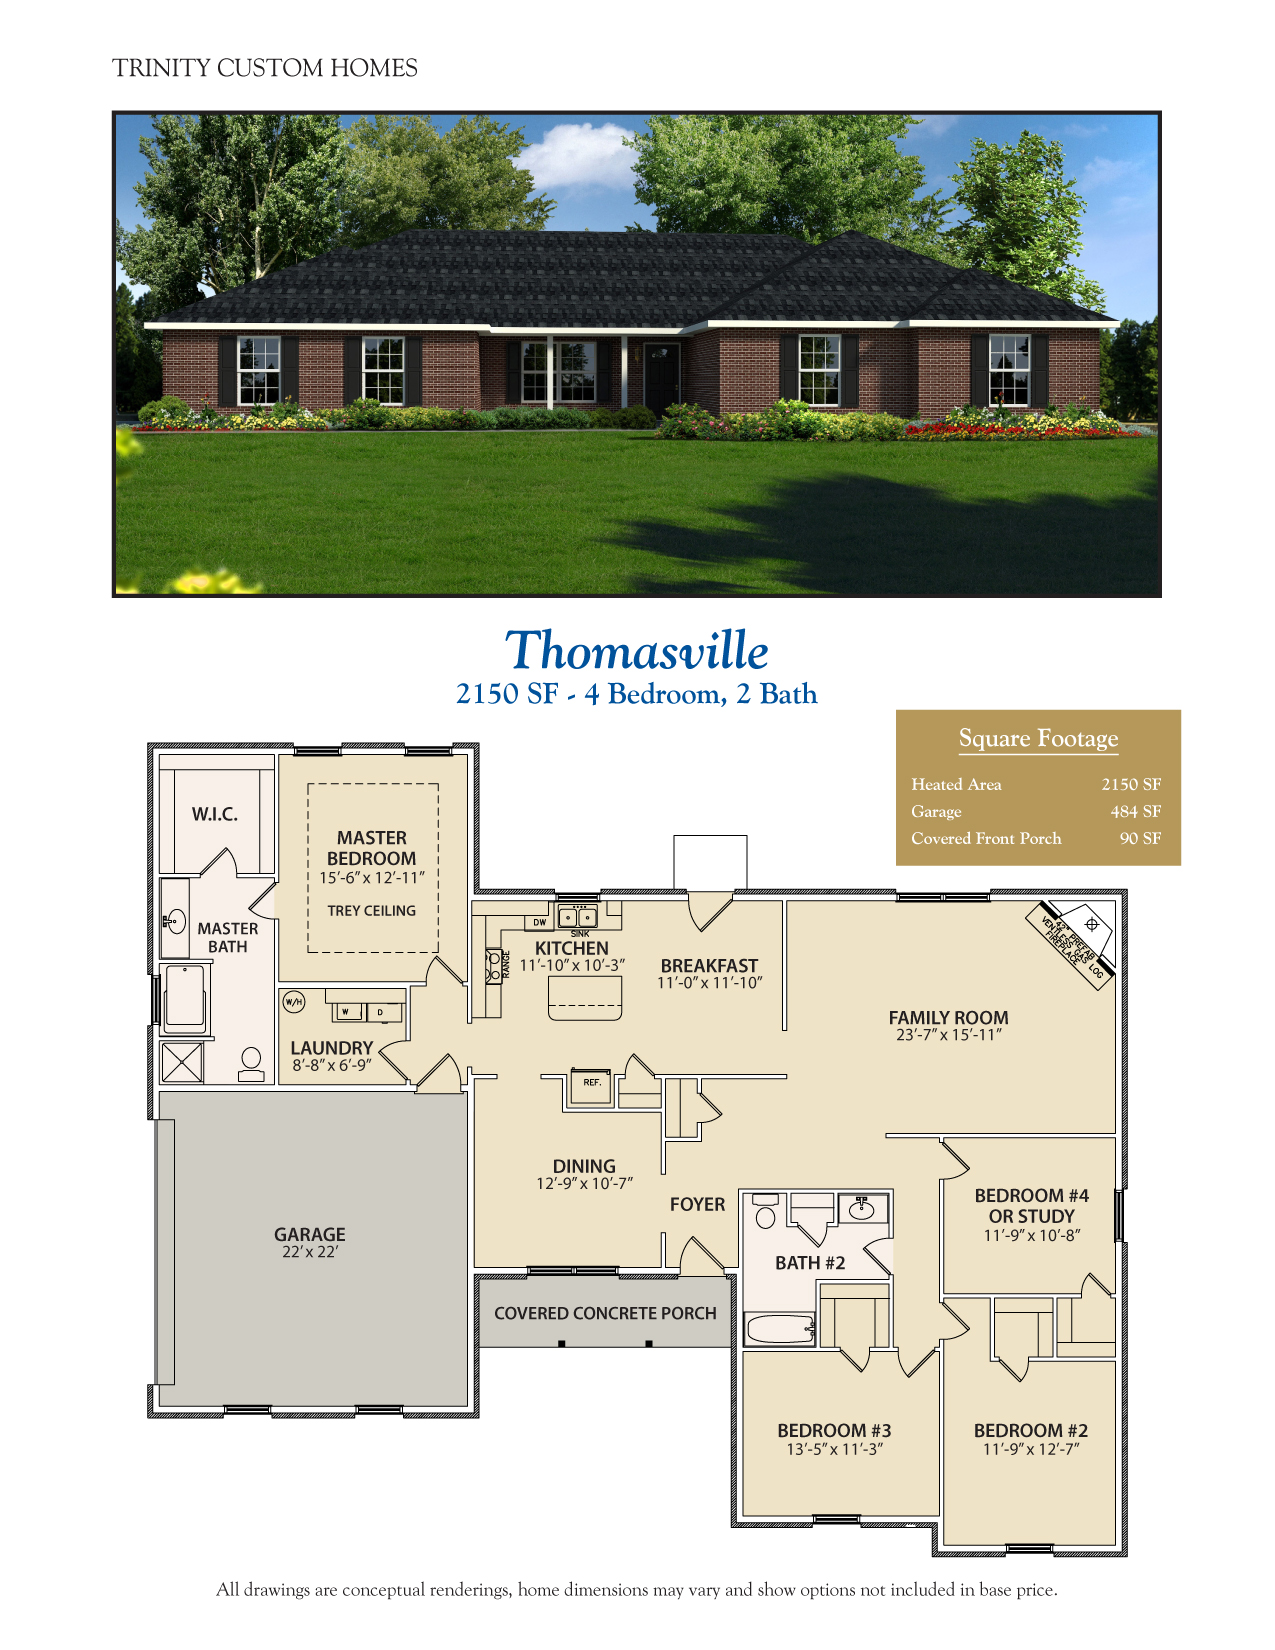 Thomasville welcome to trinity custom homes for Trinity house plans